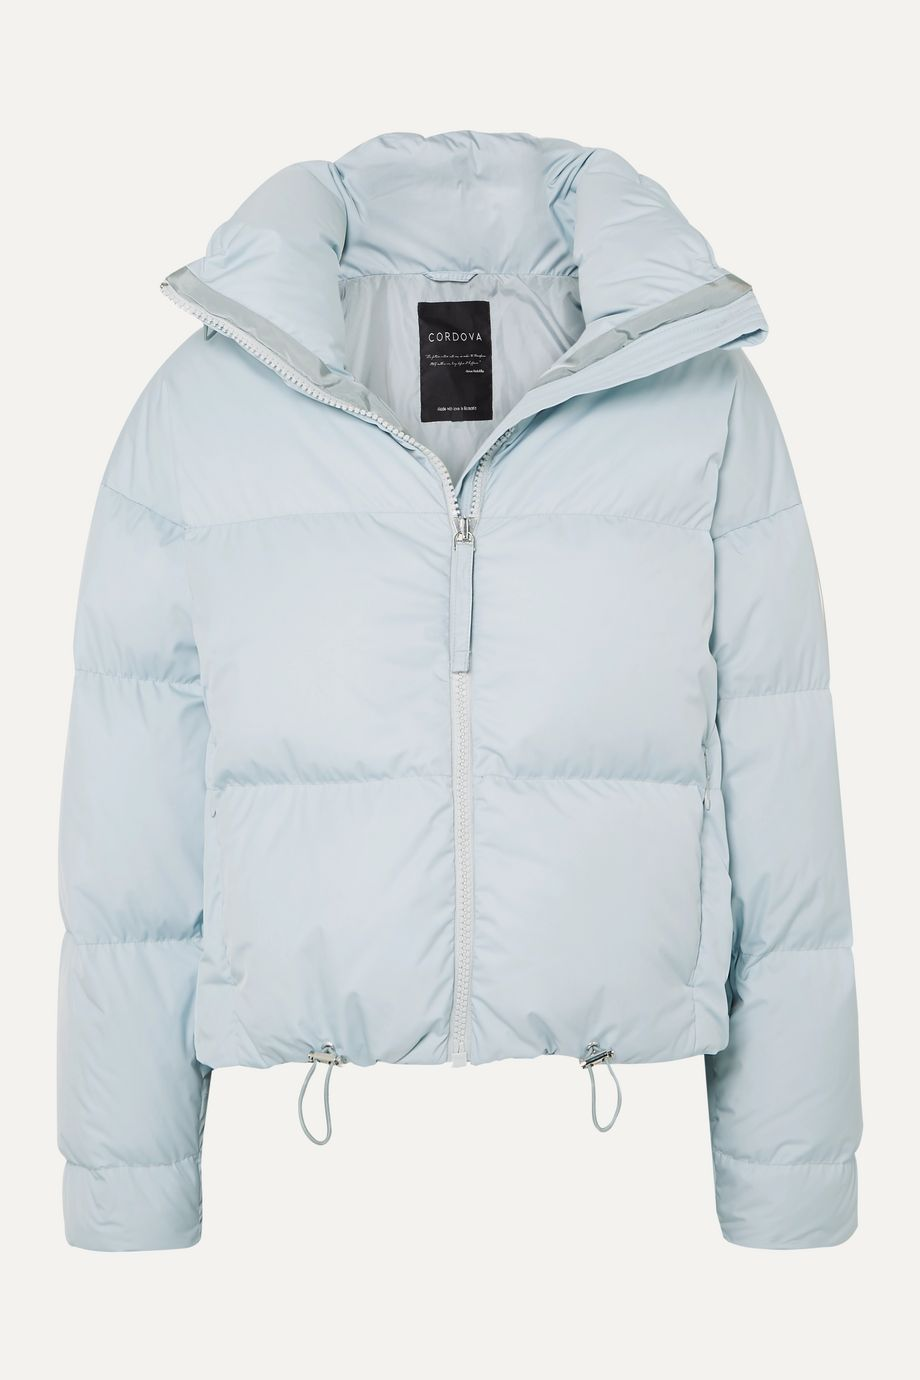 Cordova The Mont Blanc cropped quilted down ski jacket